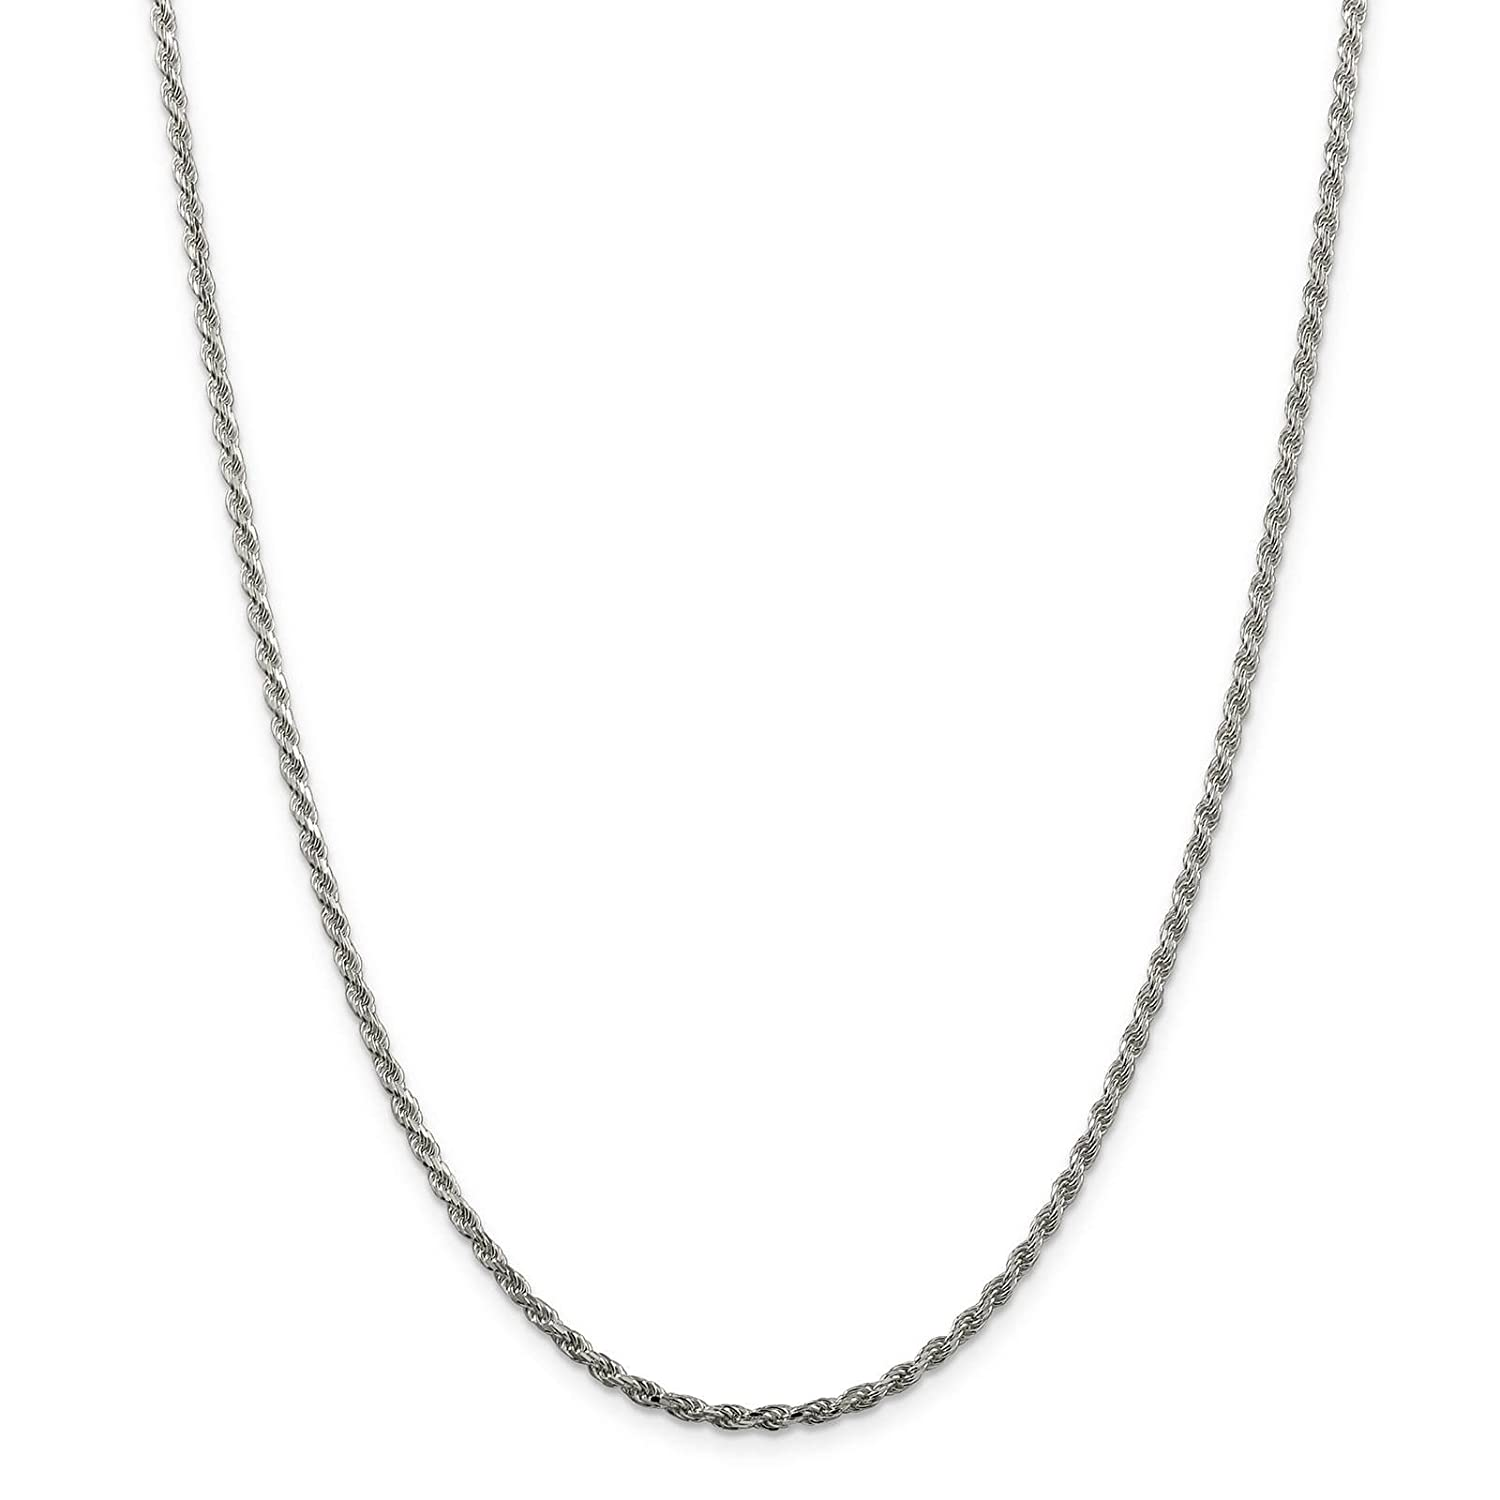 925 Sterling Silver Rhodium-finish 2.2mm Diamond-cut Rope Chain Necklace 18-24